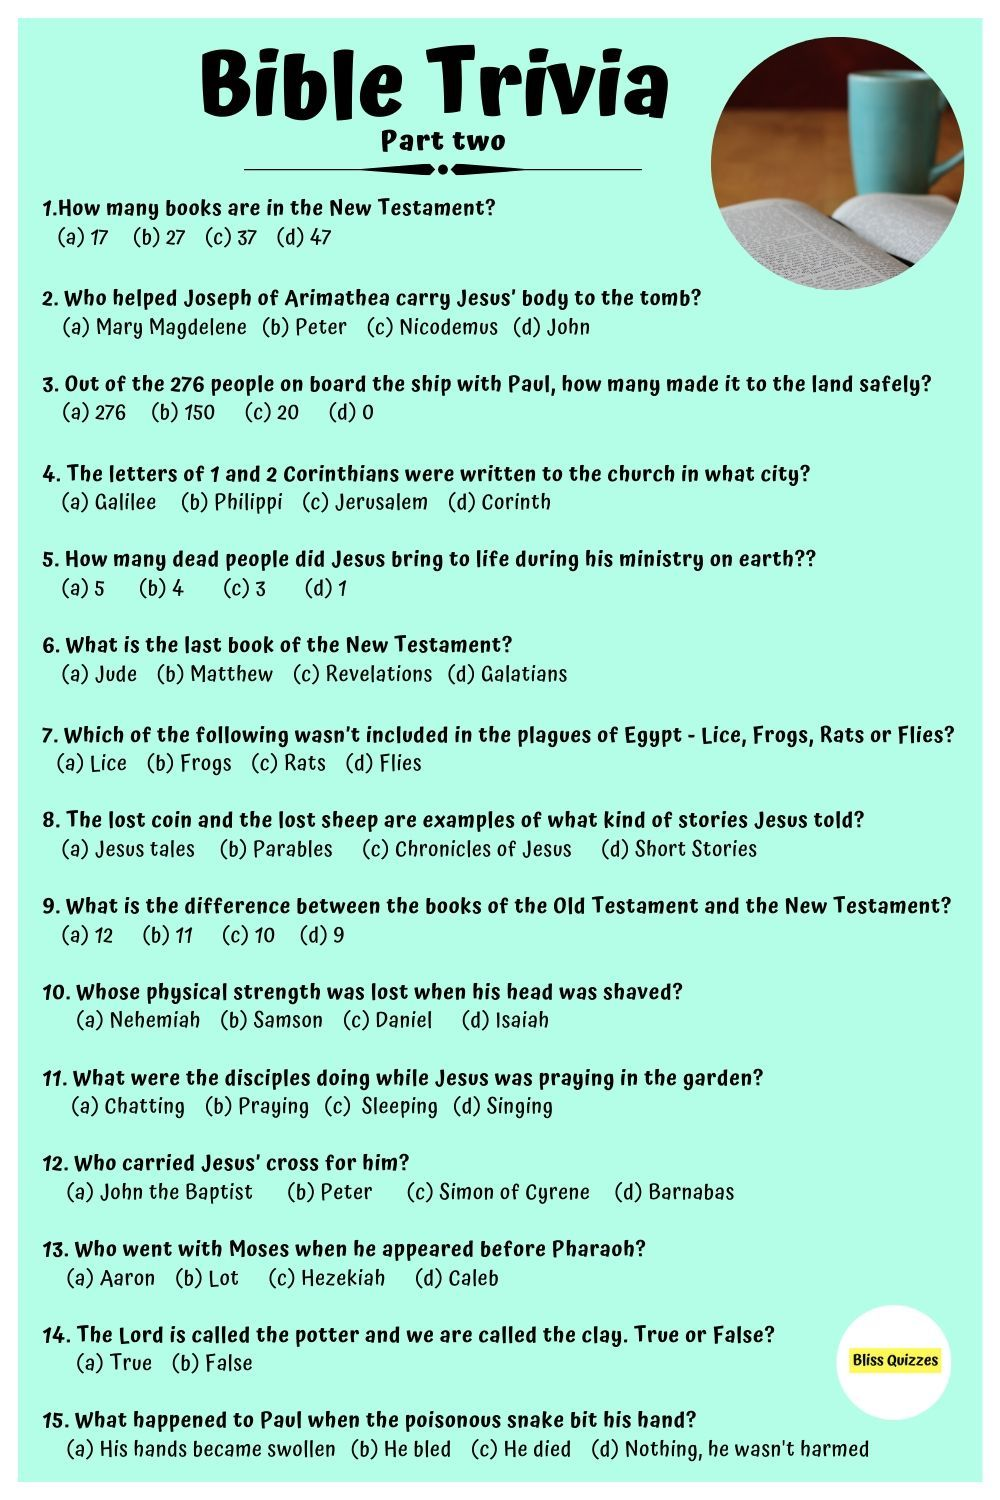 Bible trivia questions and answers part two in 2020 ...